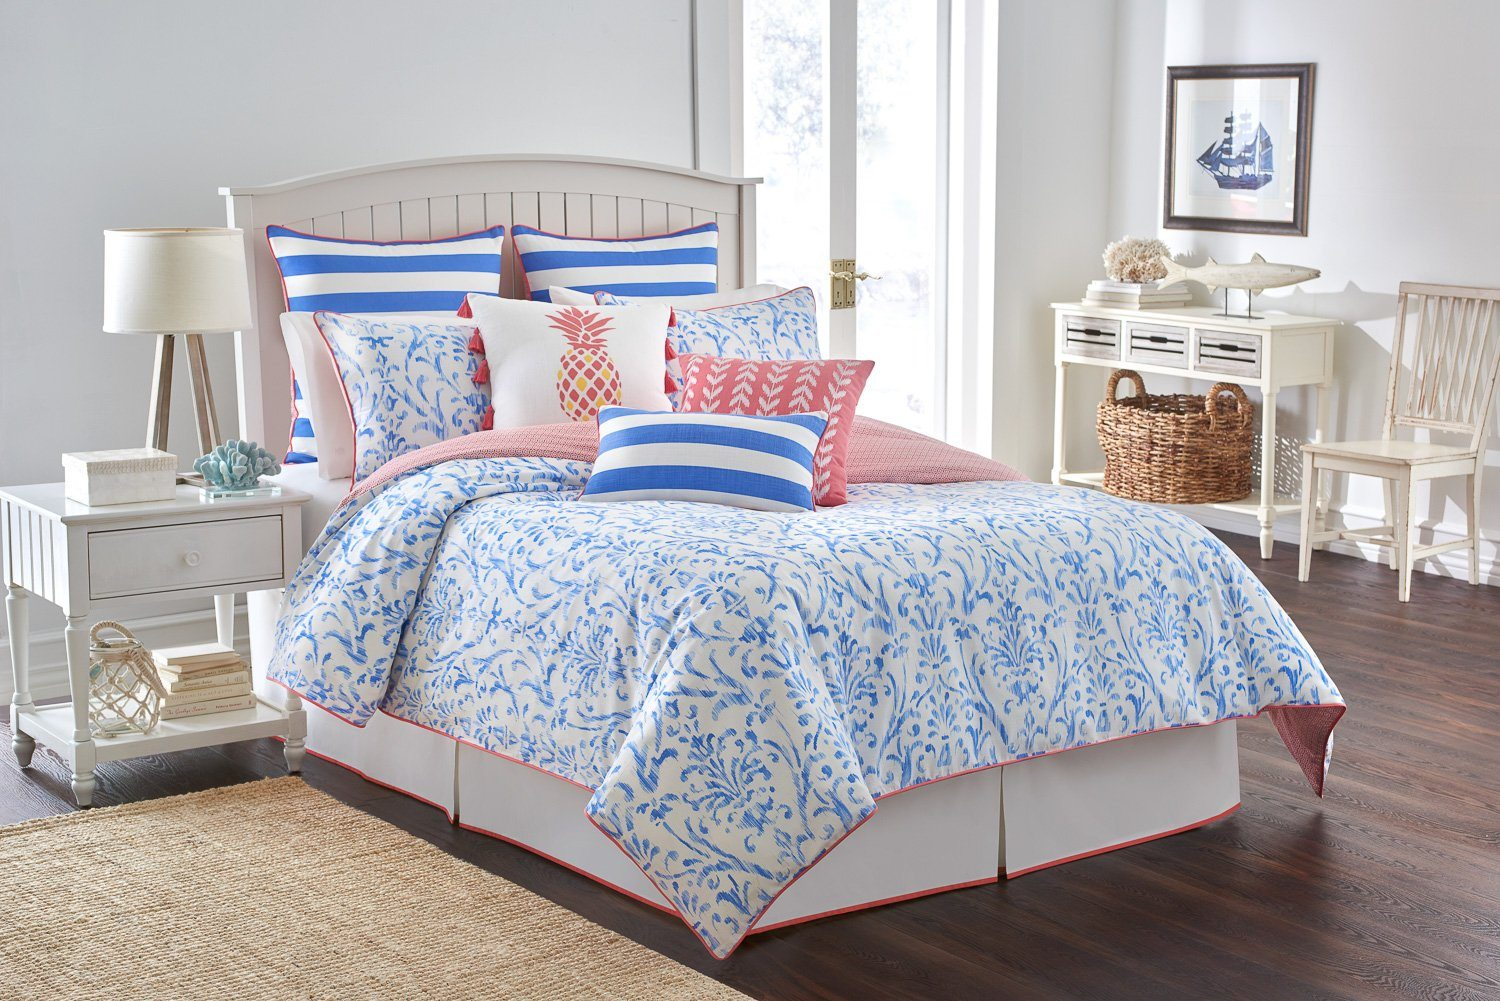 amazon collection bay bloomingdales cover calvin count sheets bedding linens duvet anne modal inspirational cotton in tc queen ikat thread view outlet sateen blue comforter down discontinued klein old solene briar